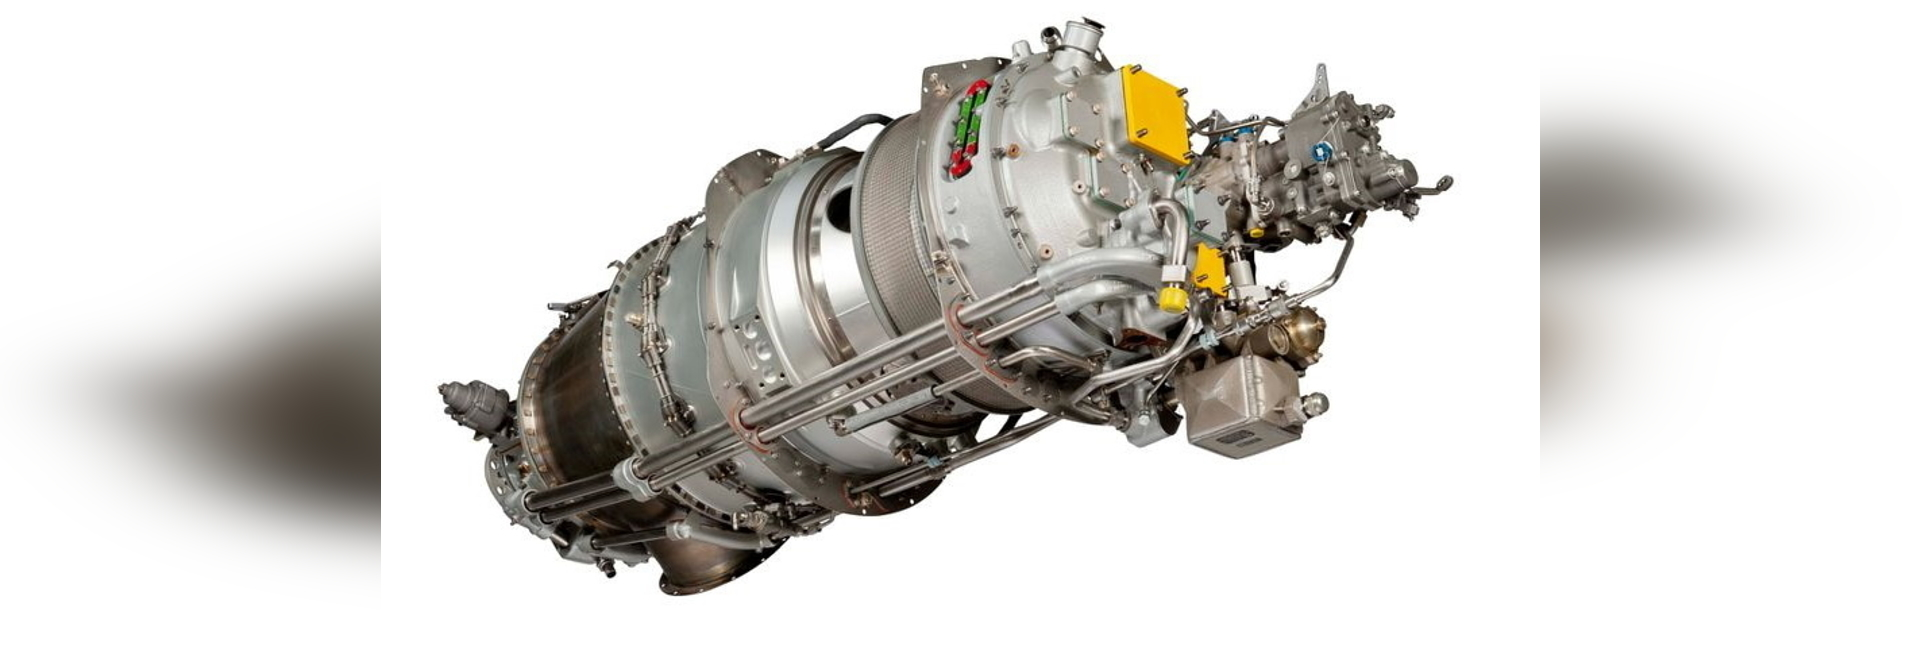 The PT6 series powers the Cessna Caravan line of turboprops, among many others.